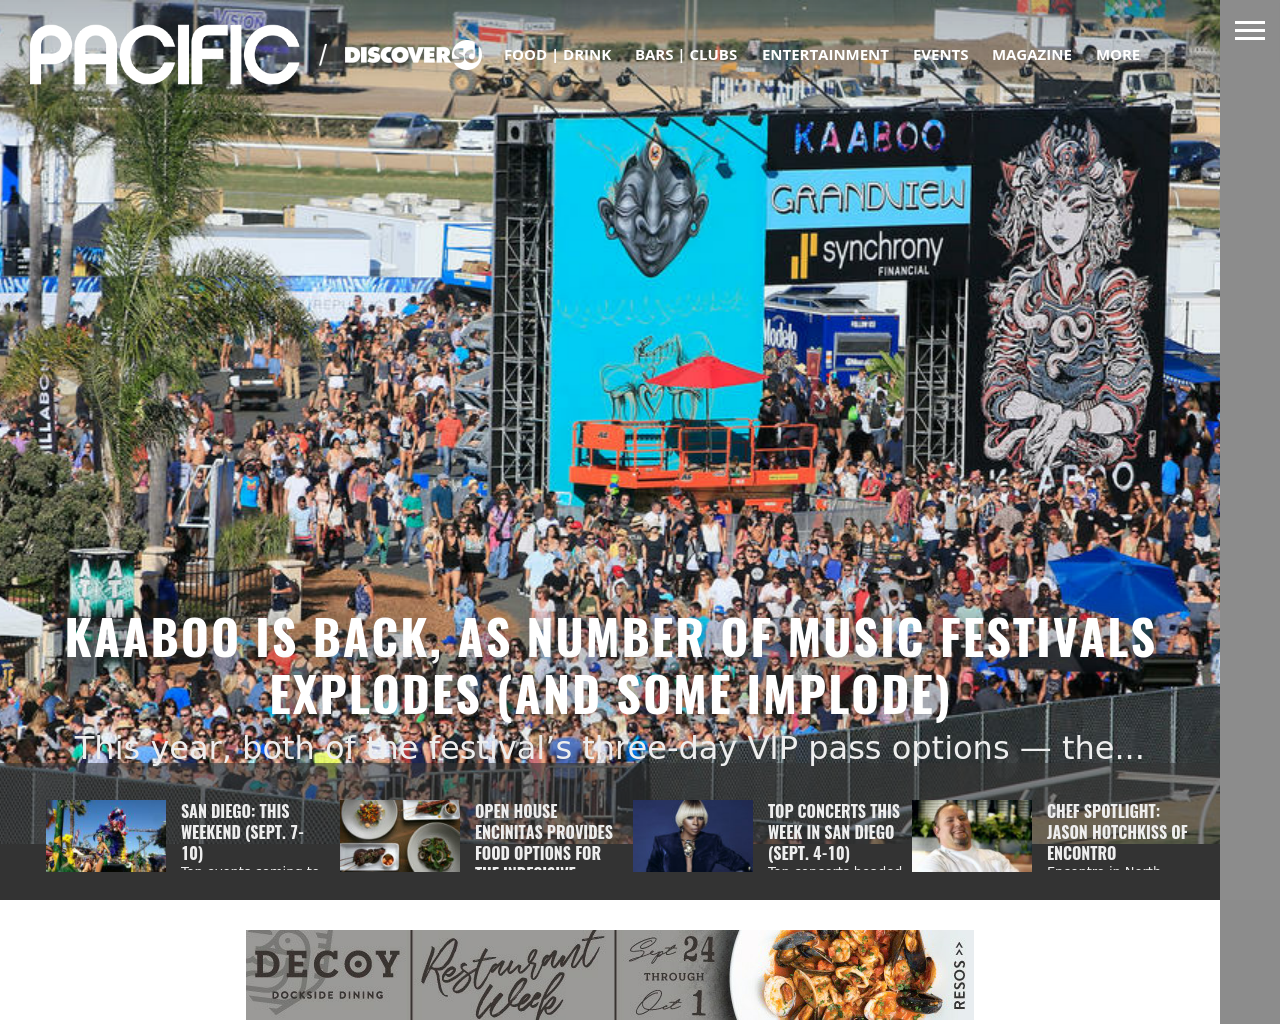 Pacific-Magazine-San-Diego-Advertising-Reviews-Pricing